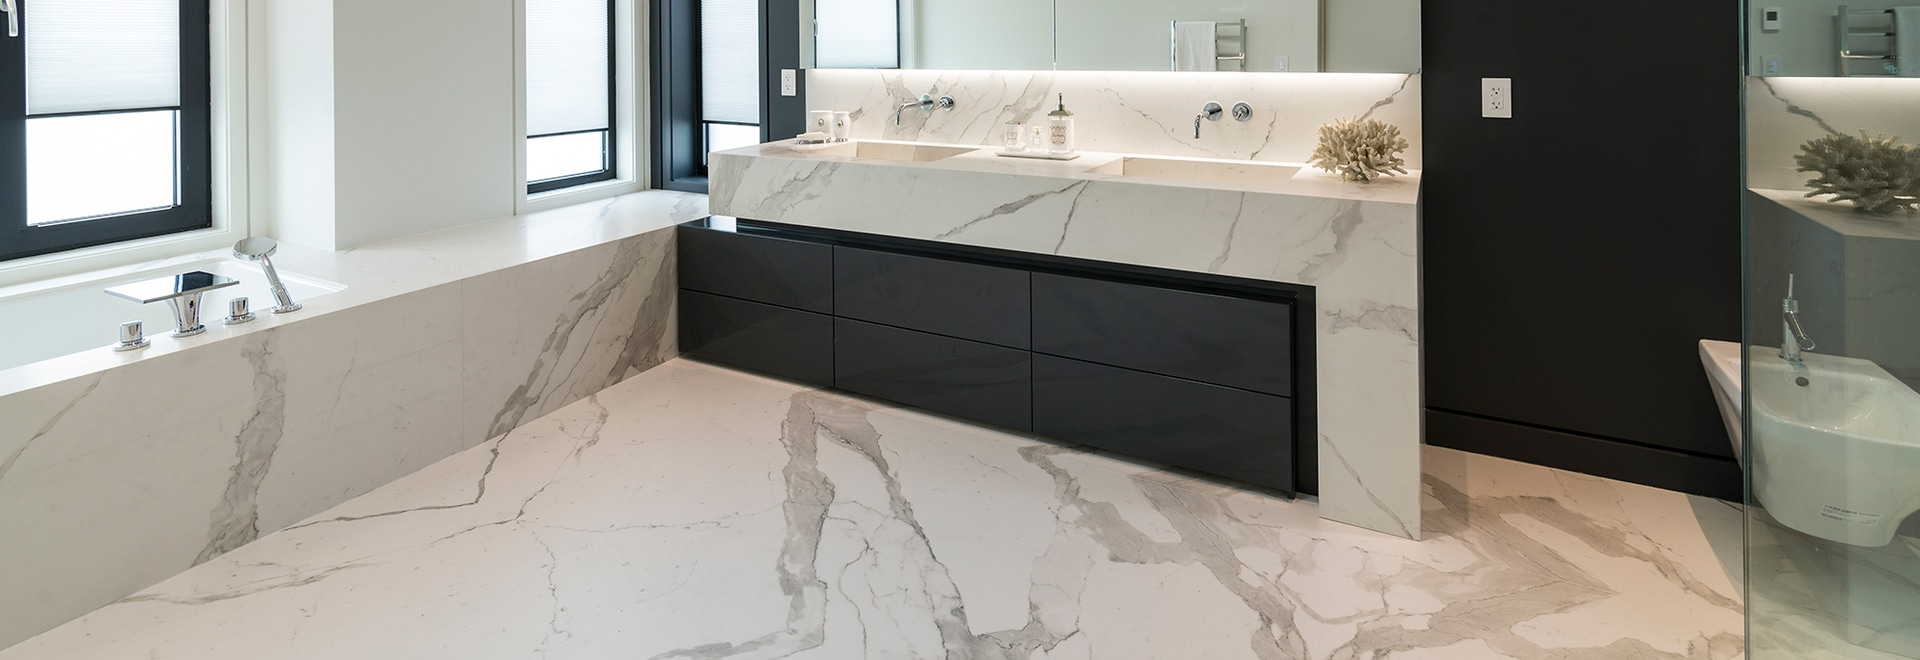 LAMINAM SLABS FOR THE TOTAL LOOK OF THE BATHROOM